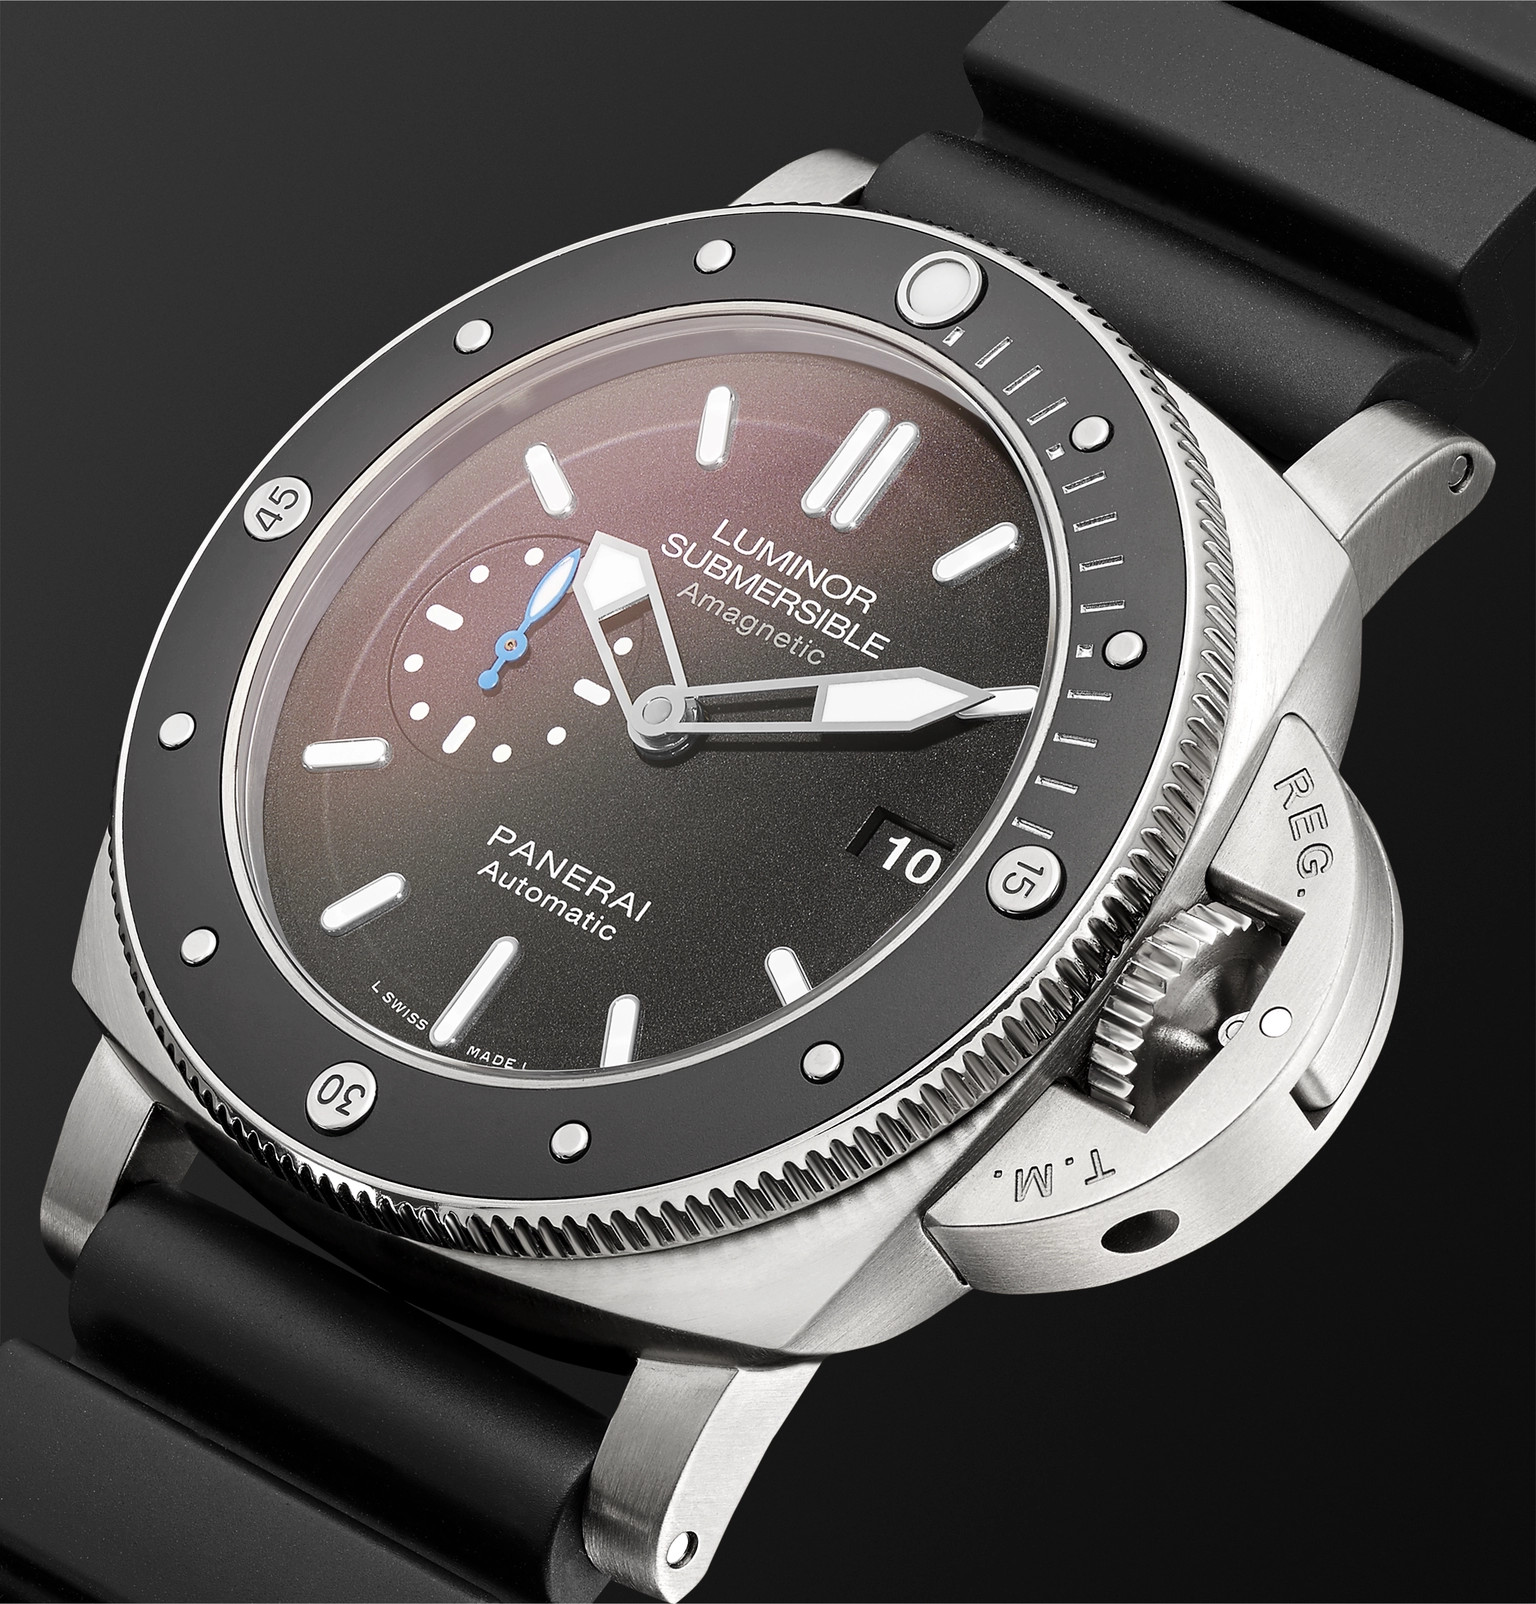 04e60e8836d9 Officine PaneraiLuminor Submersible 1950 Amagnetic 3 Days Automatic 47mm  Titanium and Rubber Watch